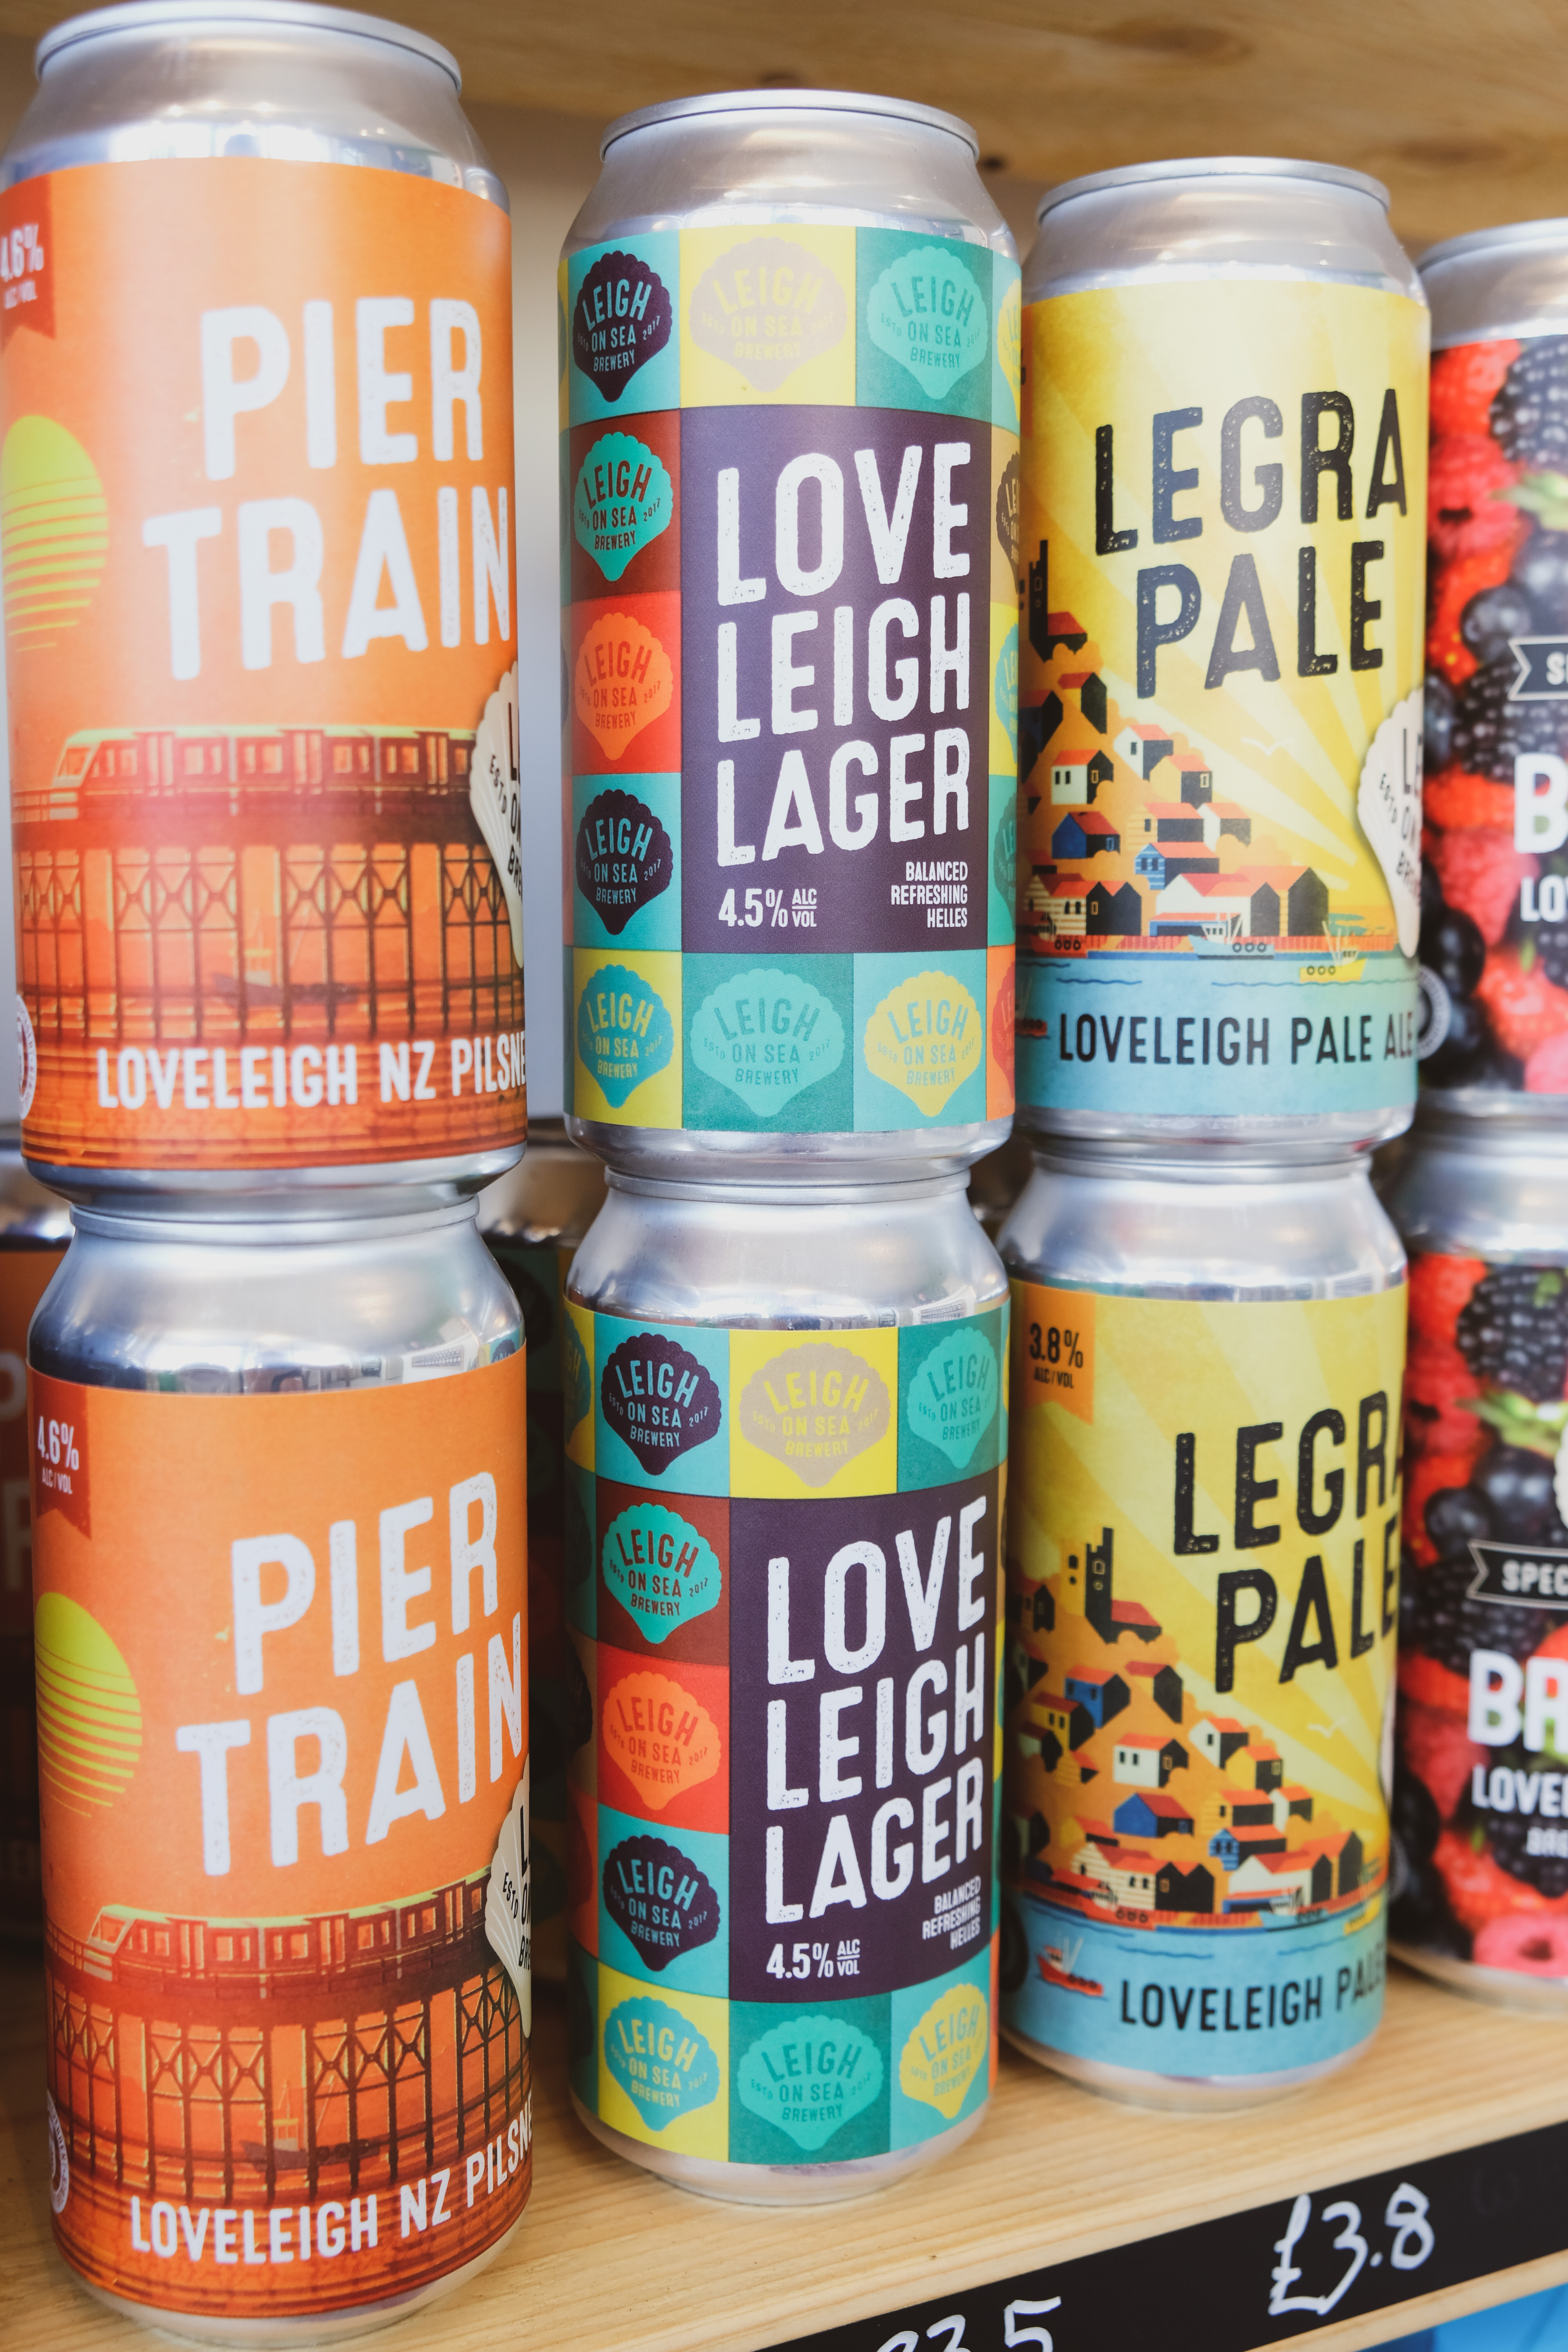 Leigh on sea brewery beer range available at the Essex Produce Co. in Kelvedon, Essex.